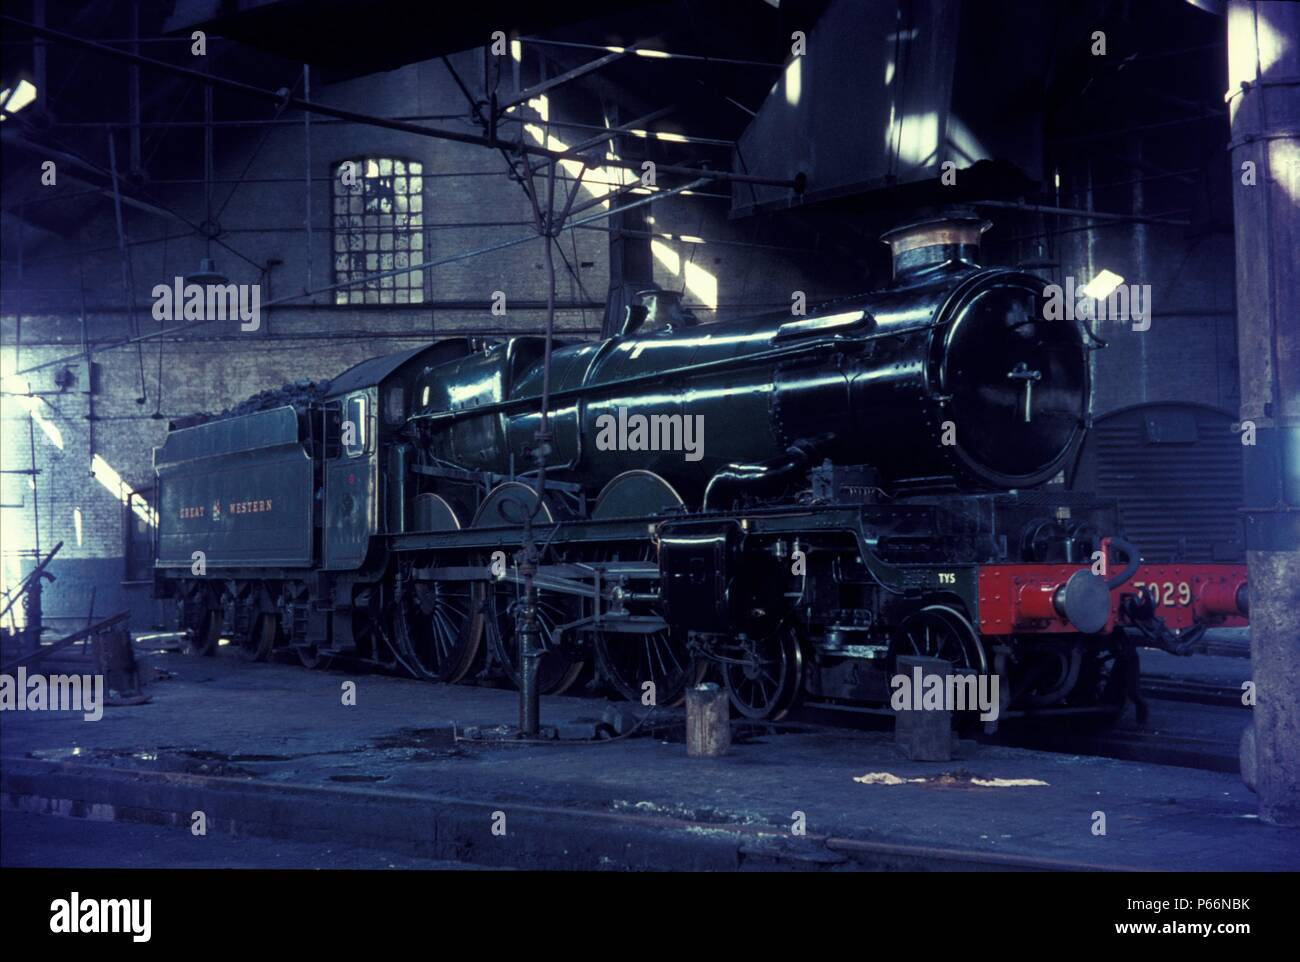 Former Great Westerm Castle Class 4-6-0 No.7029, Clun Castle, minus nameplates, in the roundhouse at Tyseley depot, Birmingham. This locomotive was ac - Stock Image